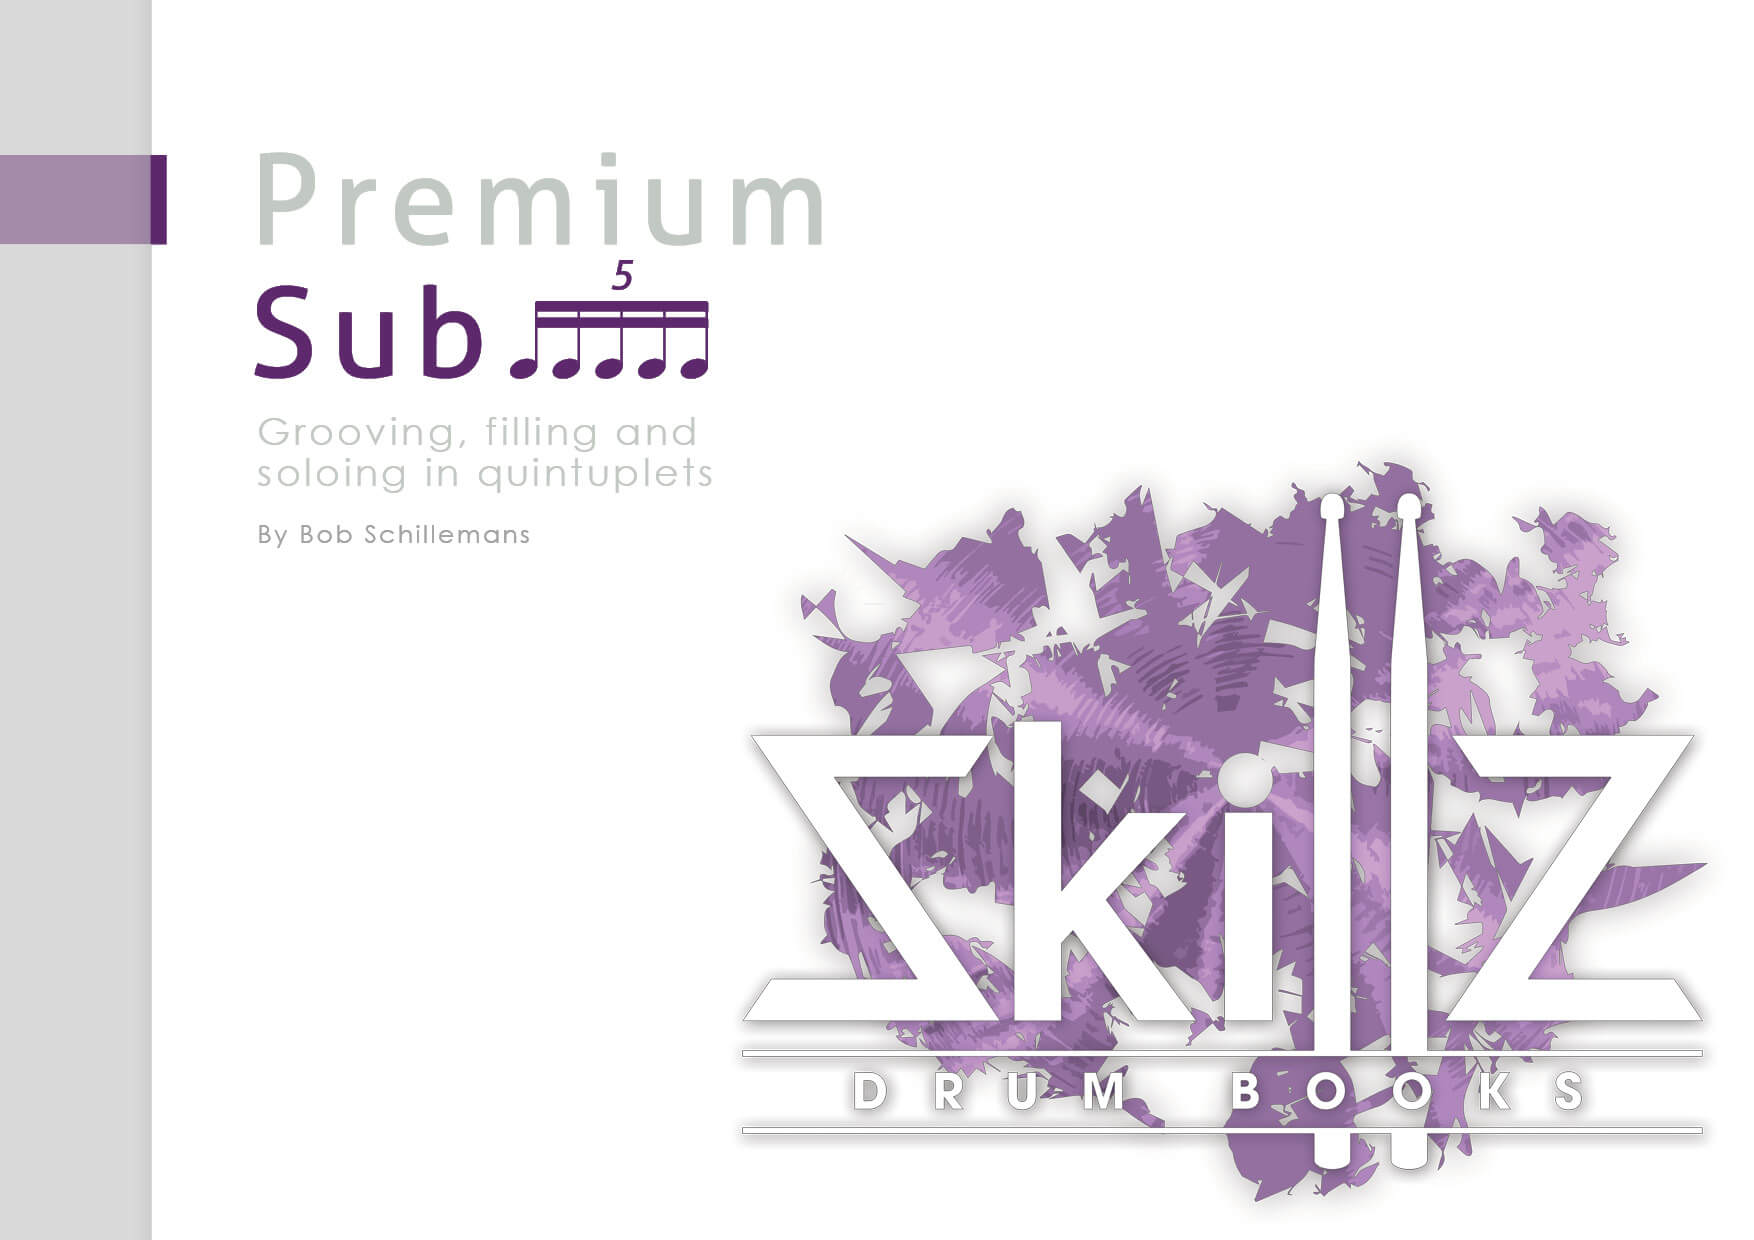 Image of cover of Skillz Drum Lessons book and Premium Course Sub 5 - Grooving, Filling and Soloing in Quintuplets